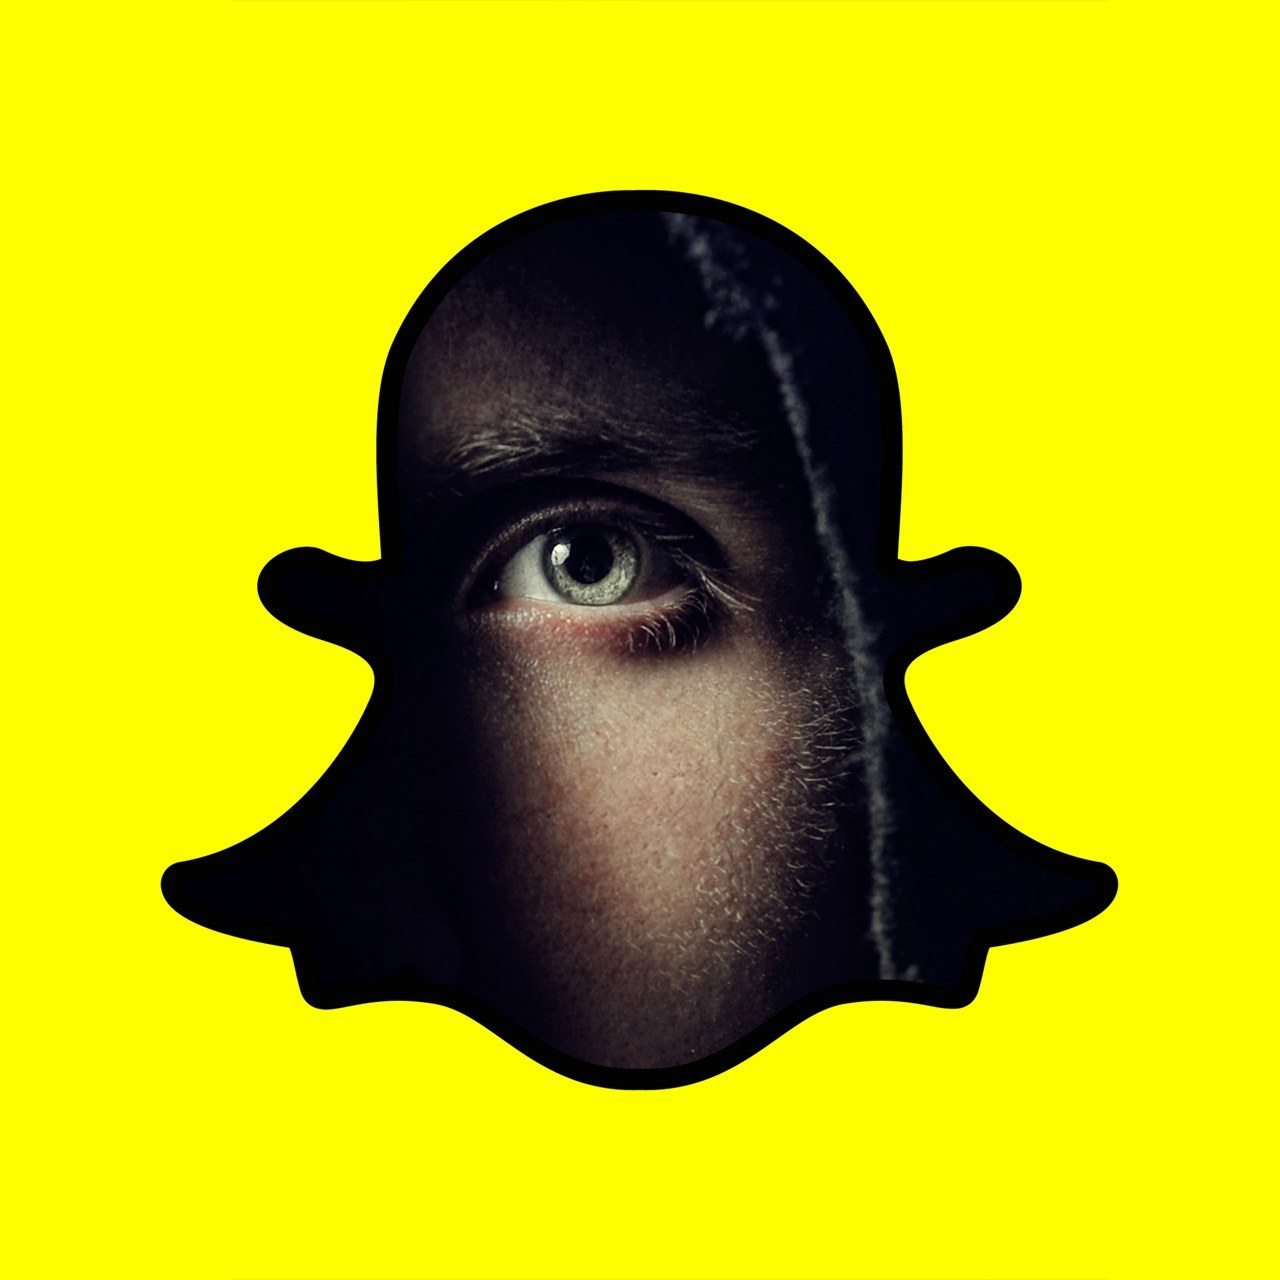 snapchat-privacy-security-FB-1